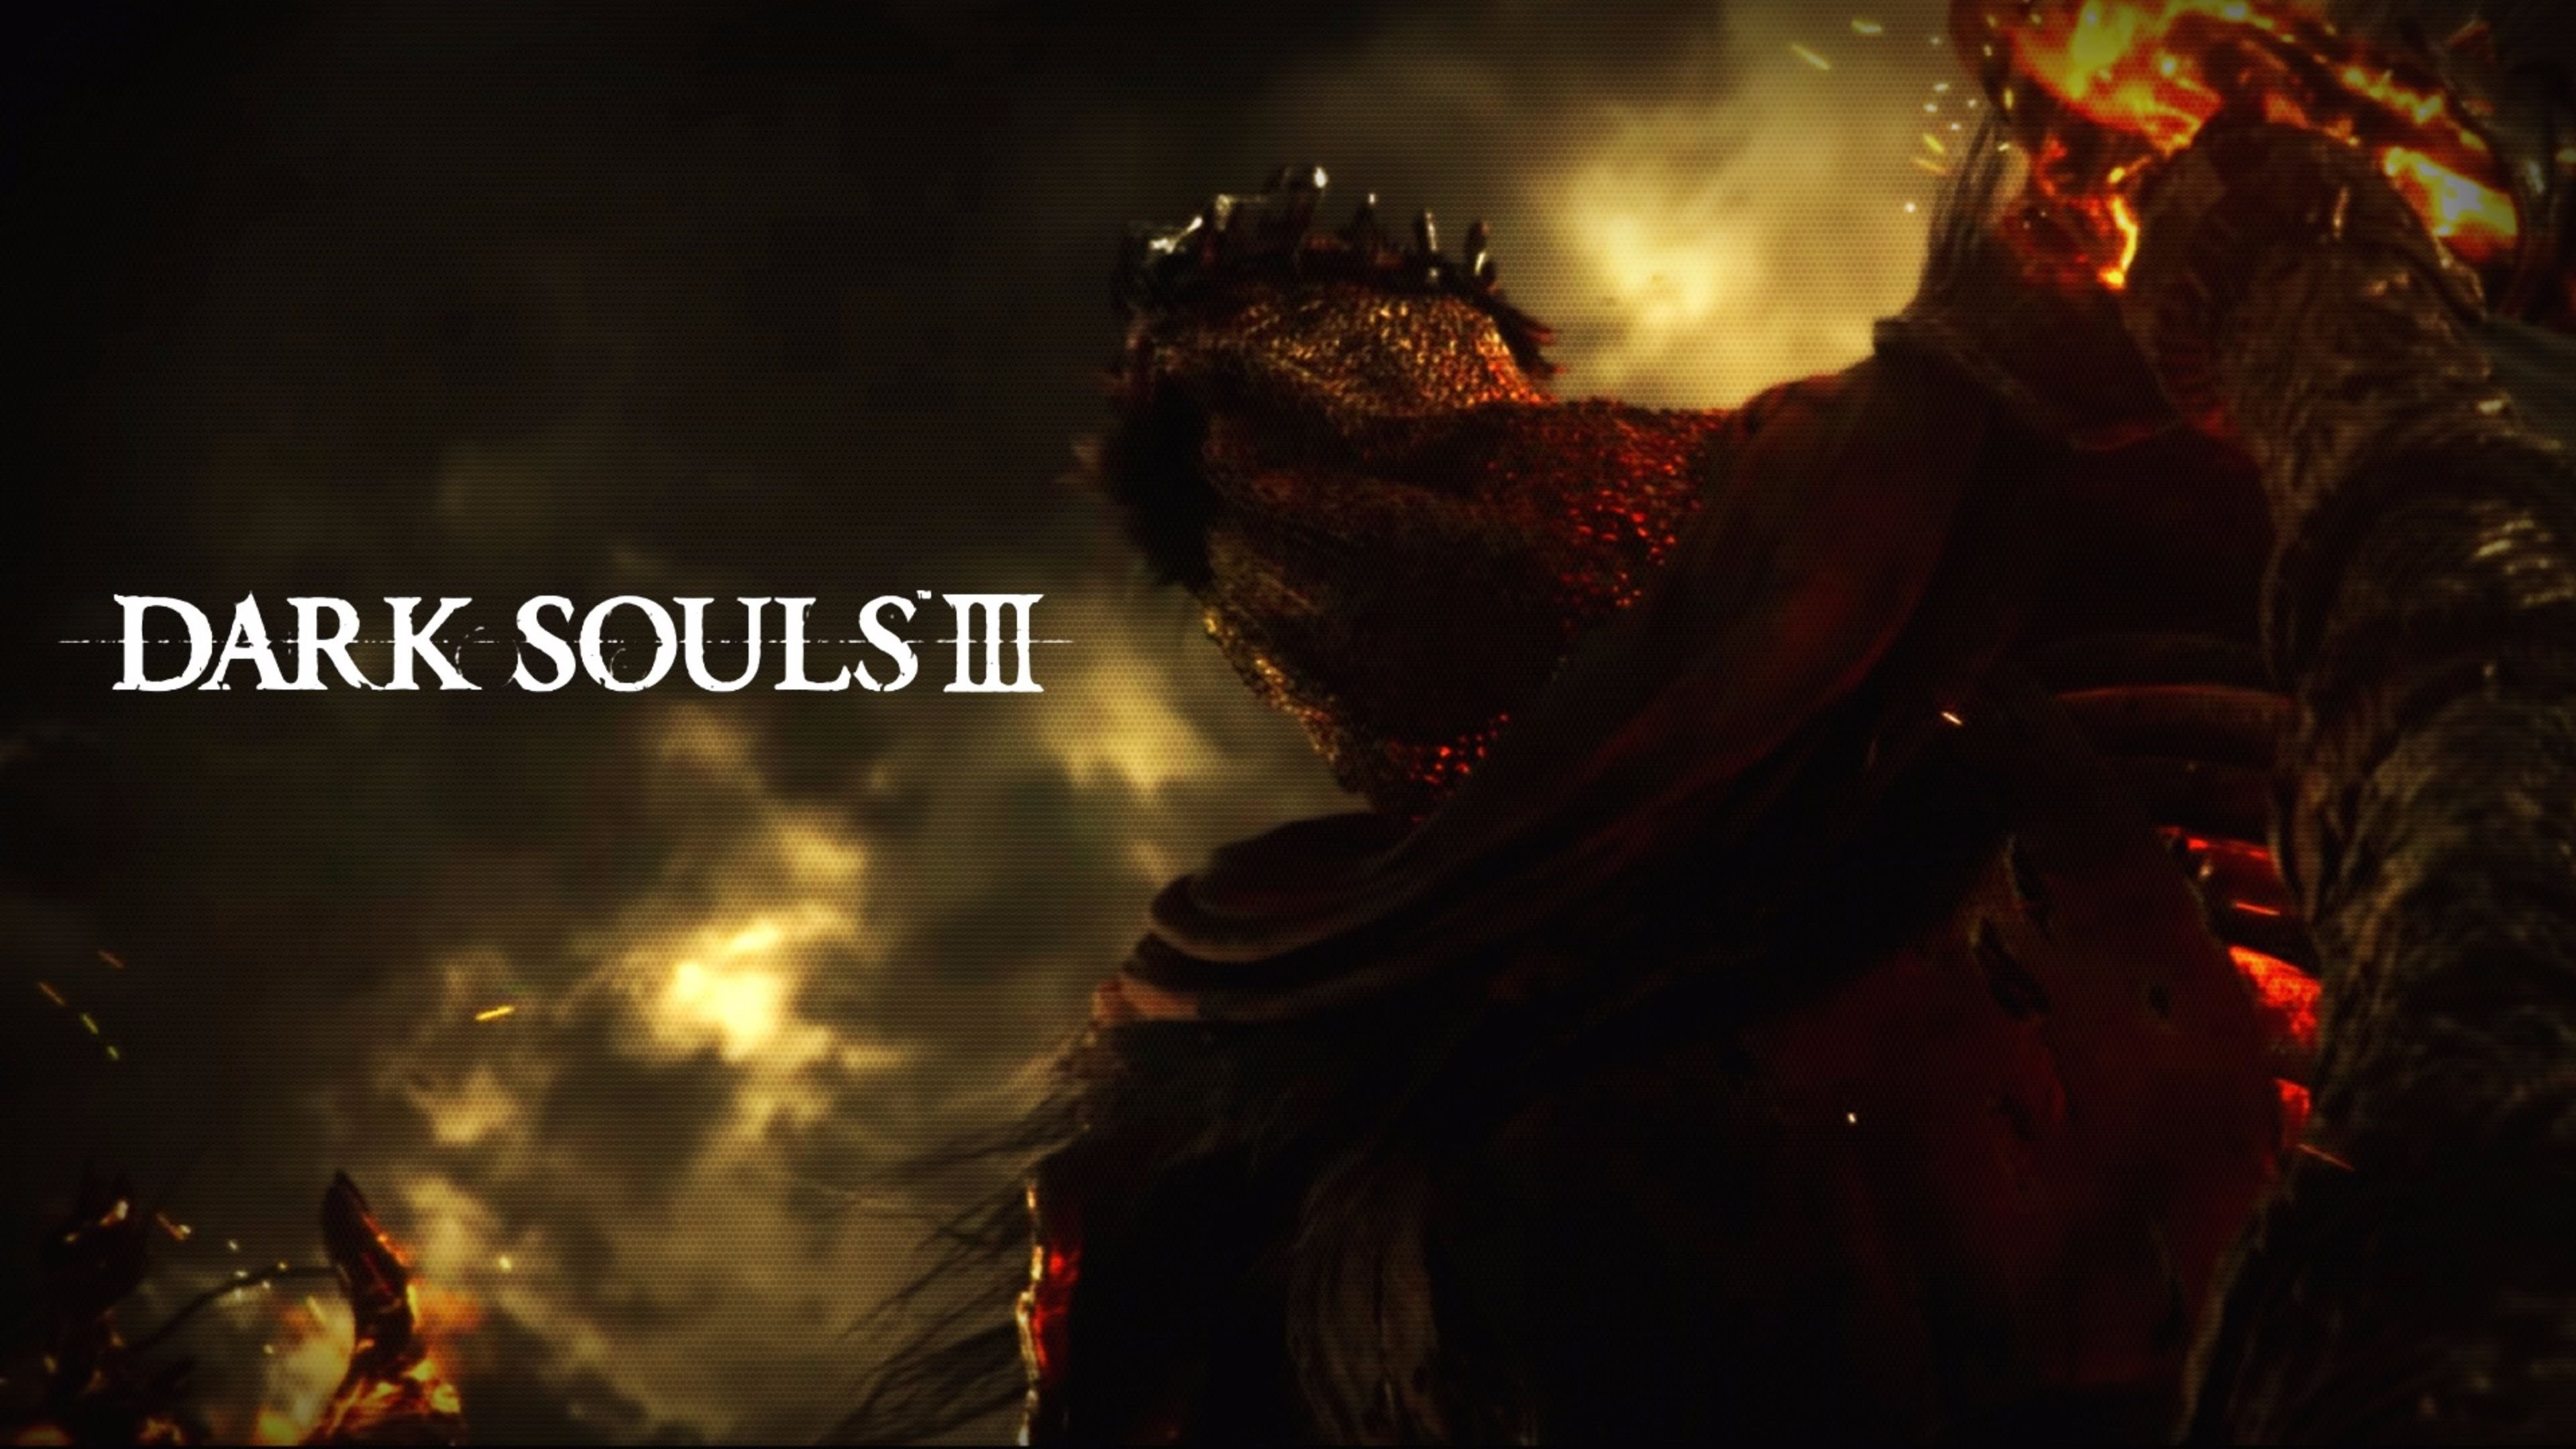 3840x2160 Dark Souls III · HD Wallpaper | Background ID:716921